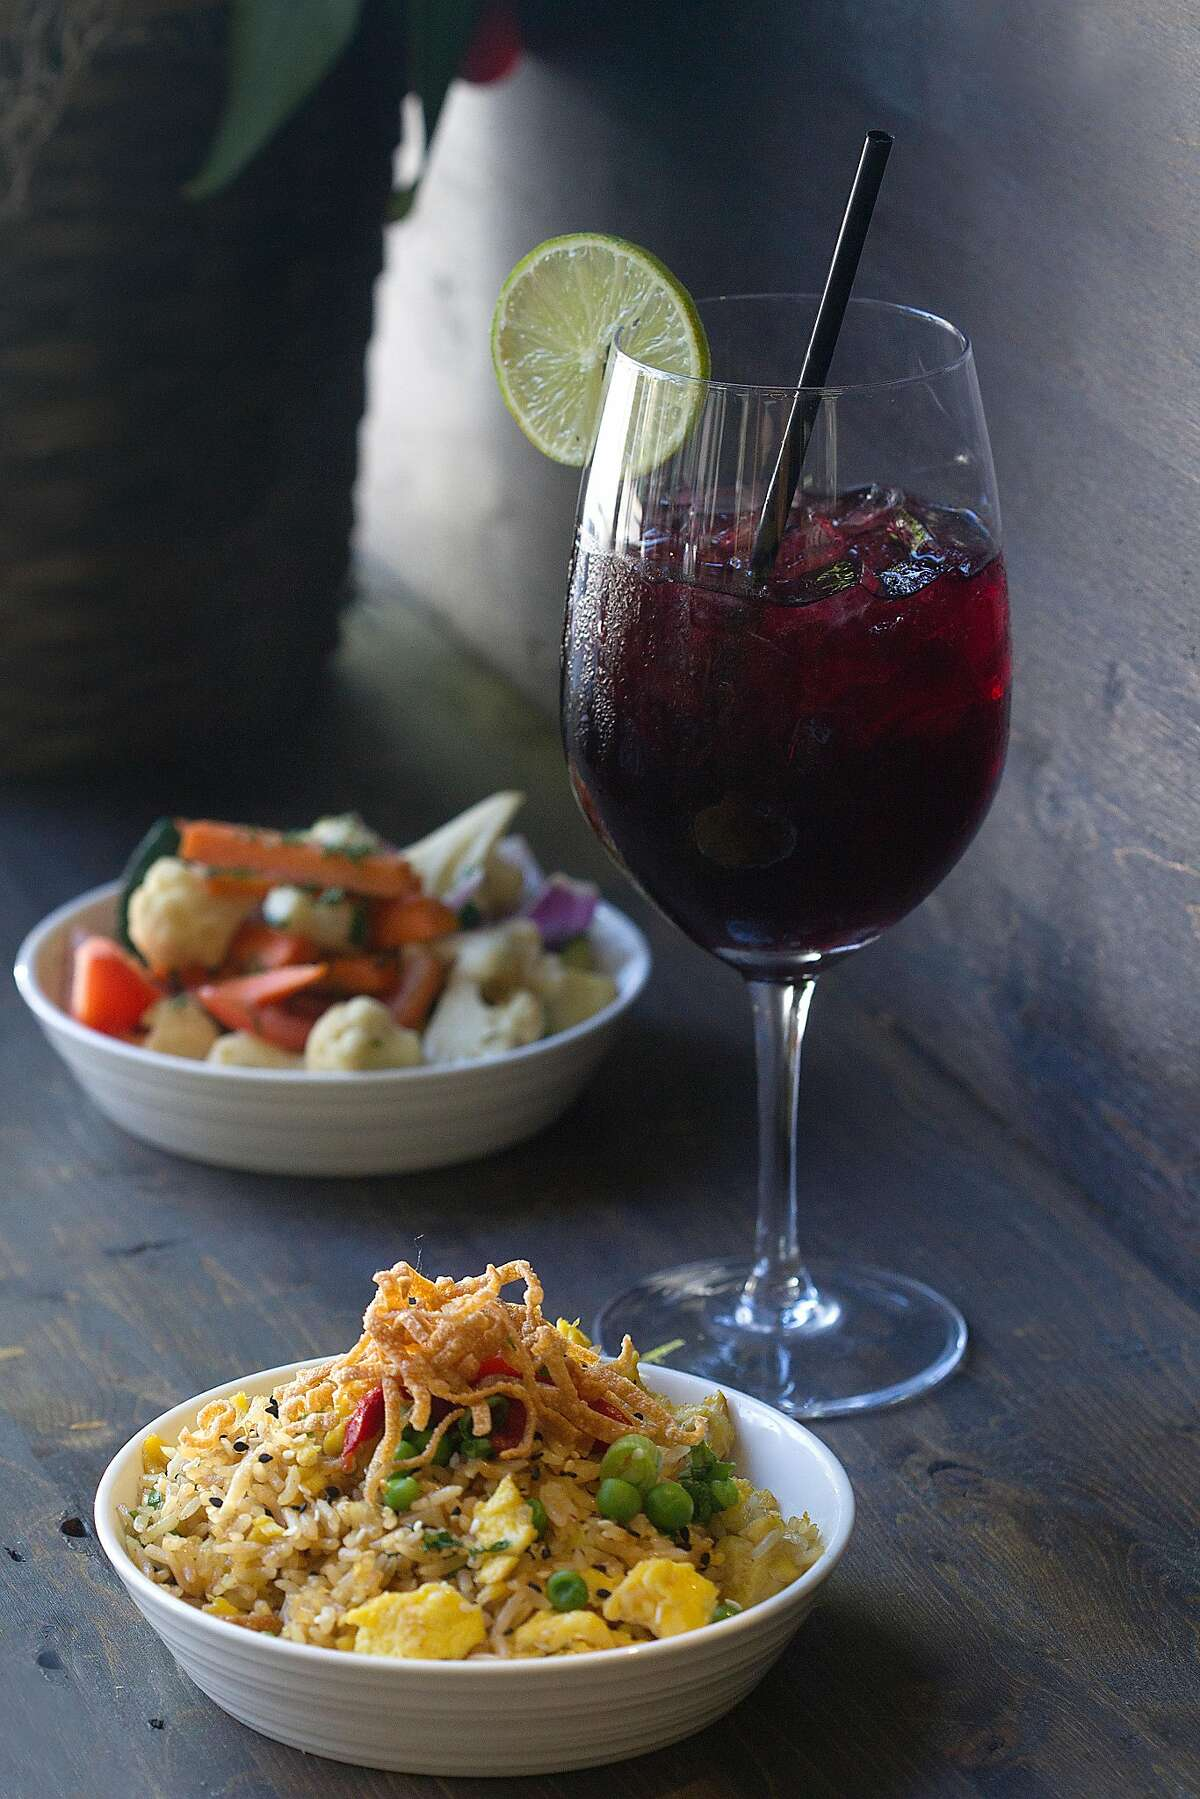 Peruvian fried rice, saut�ed vegetables and chicha morada at Alma Cocina on Thursday, September 28, 2017, in San Francisco, Calif.